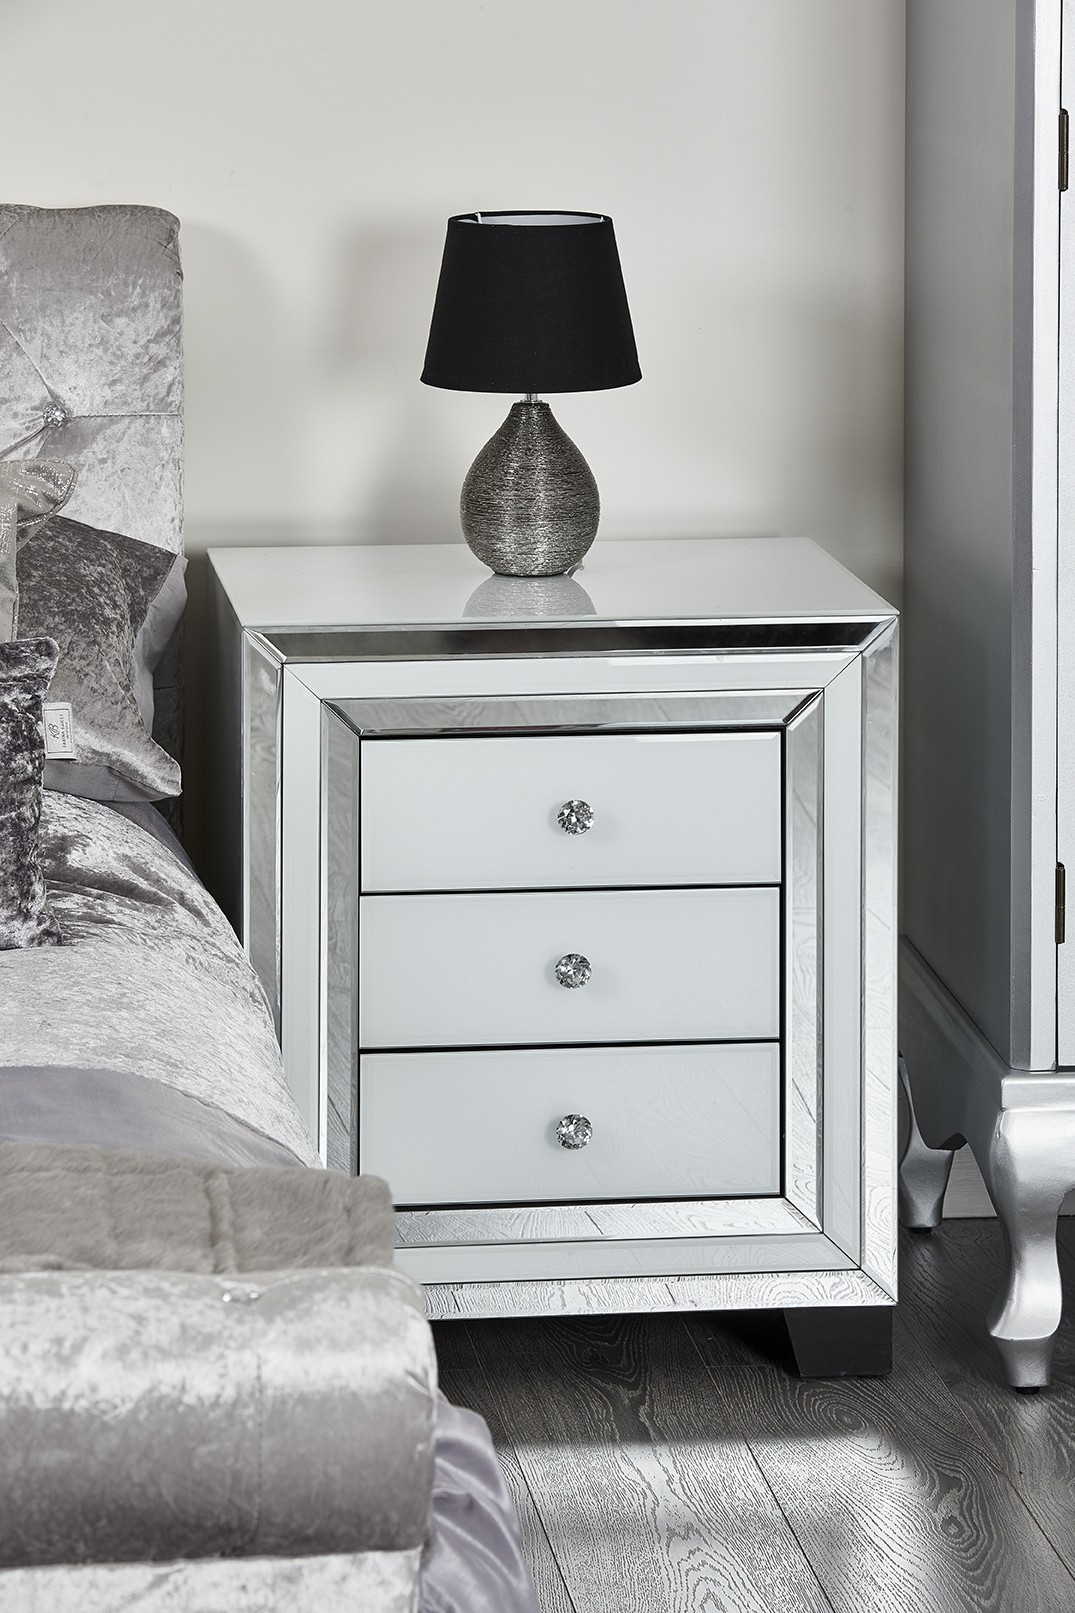 Mirrors Behind Bedside Tables: Mirror Furniture White Glass Mirrored Bedside Table TV